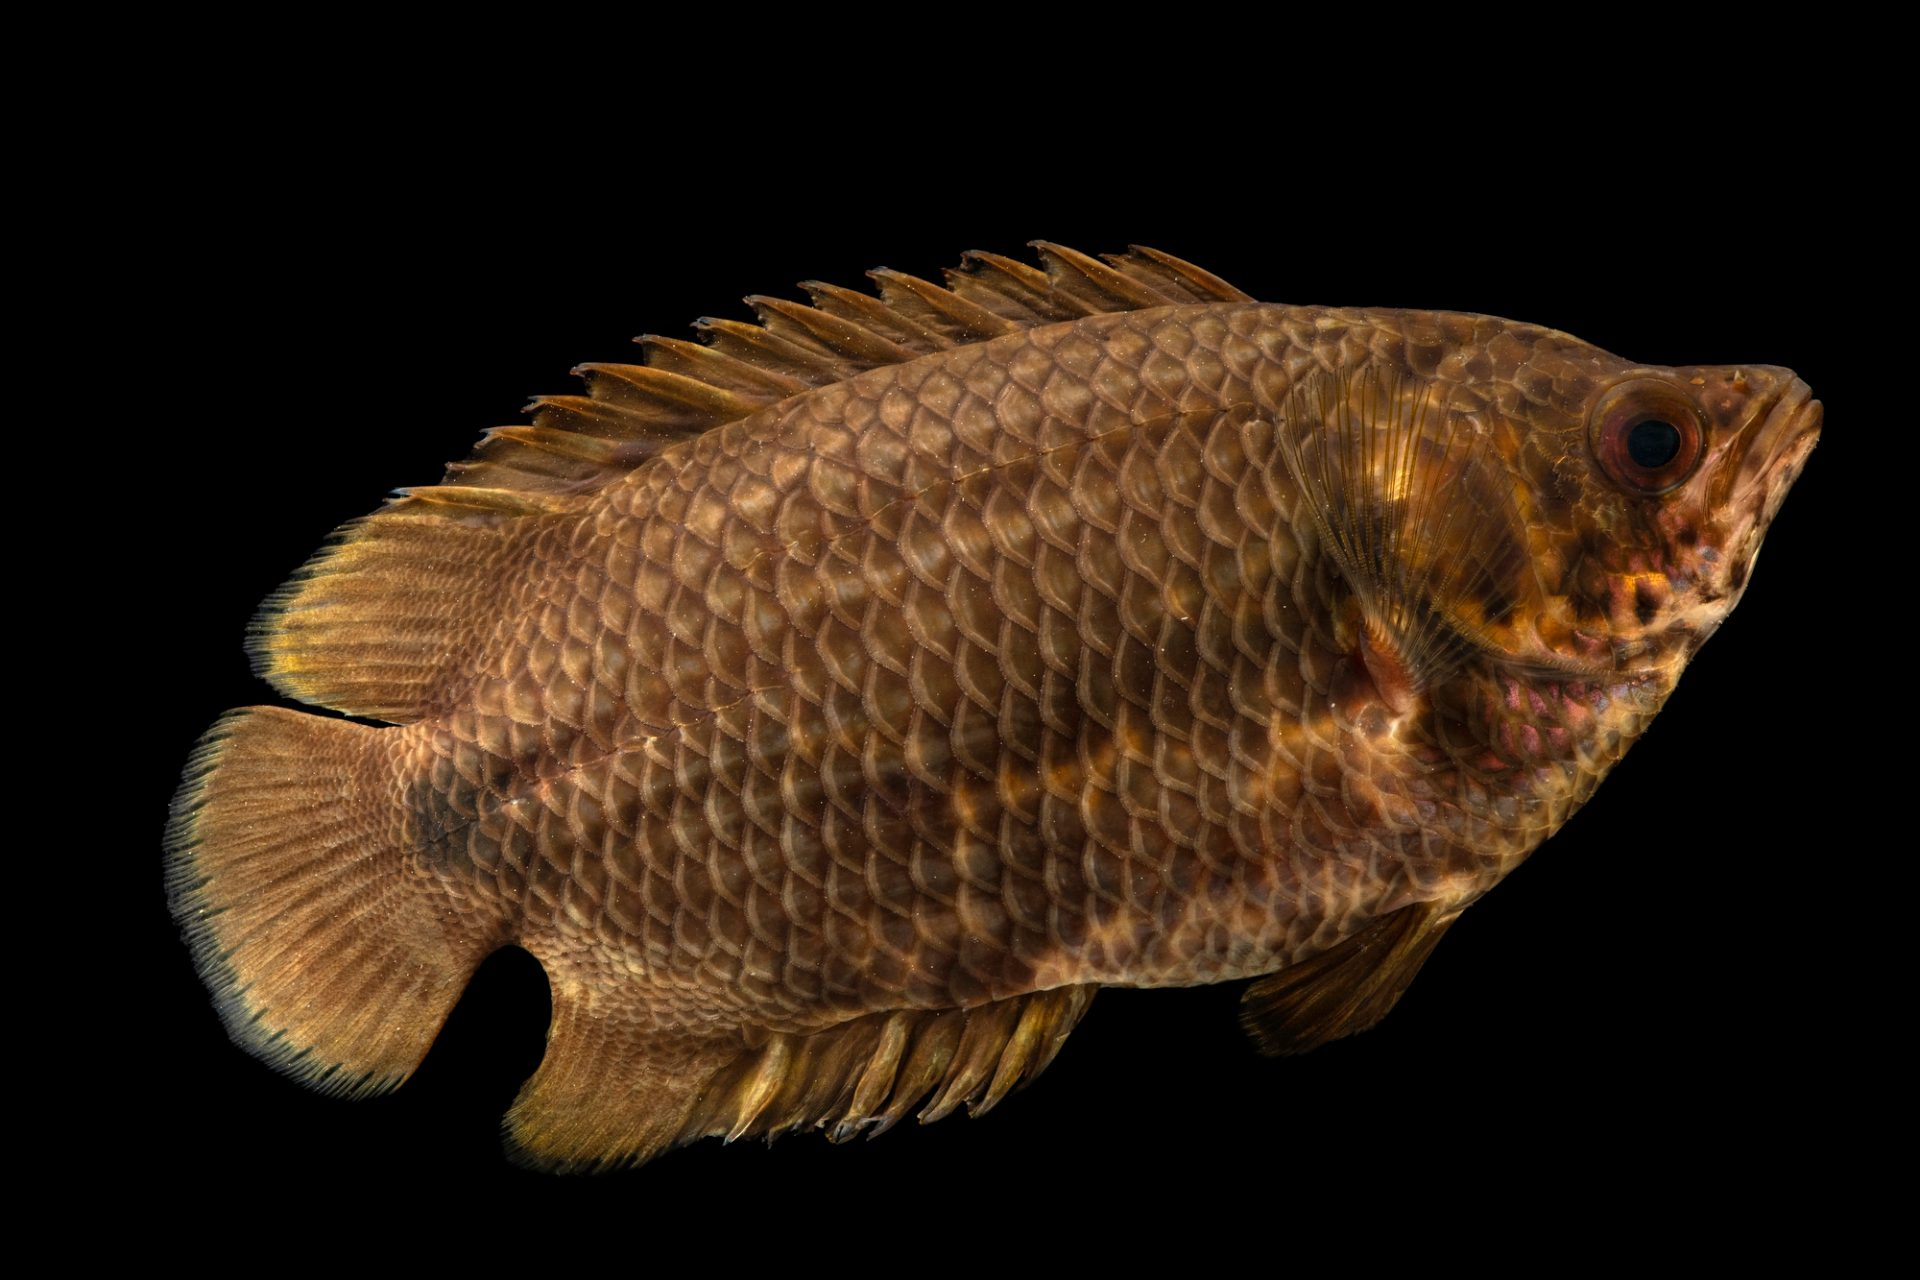 Photo: A leopard bush fish (Ctenopoma acutirostre) at the Fish Biodiversity Lab at Auburn University.